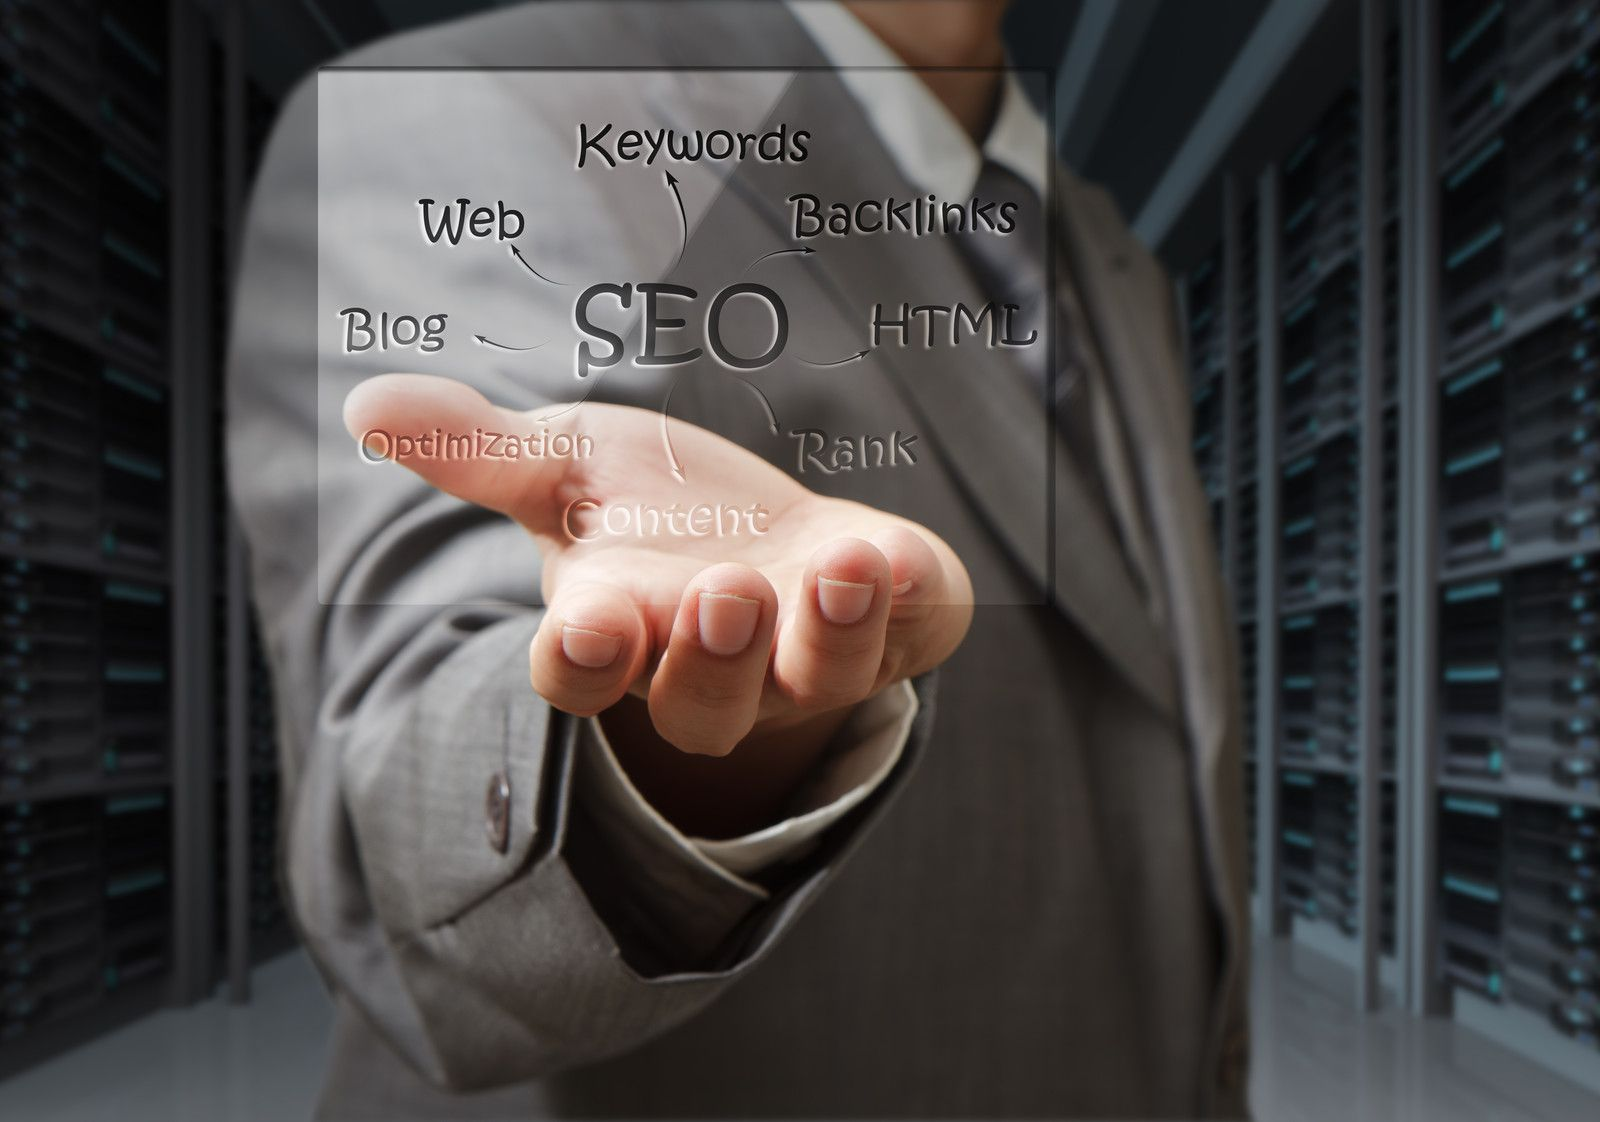 The #1 SEO Agency in Sacramento CA. Call us for more details #MatthewLee #SEOSacramento #SEOSacramentoAgency